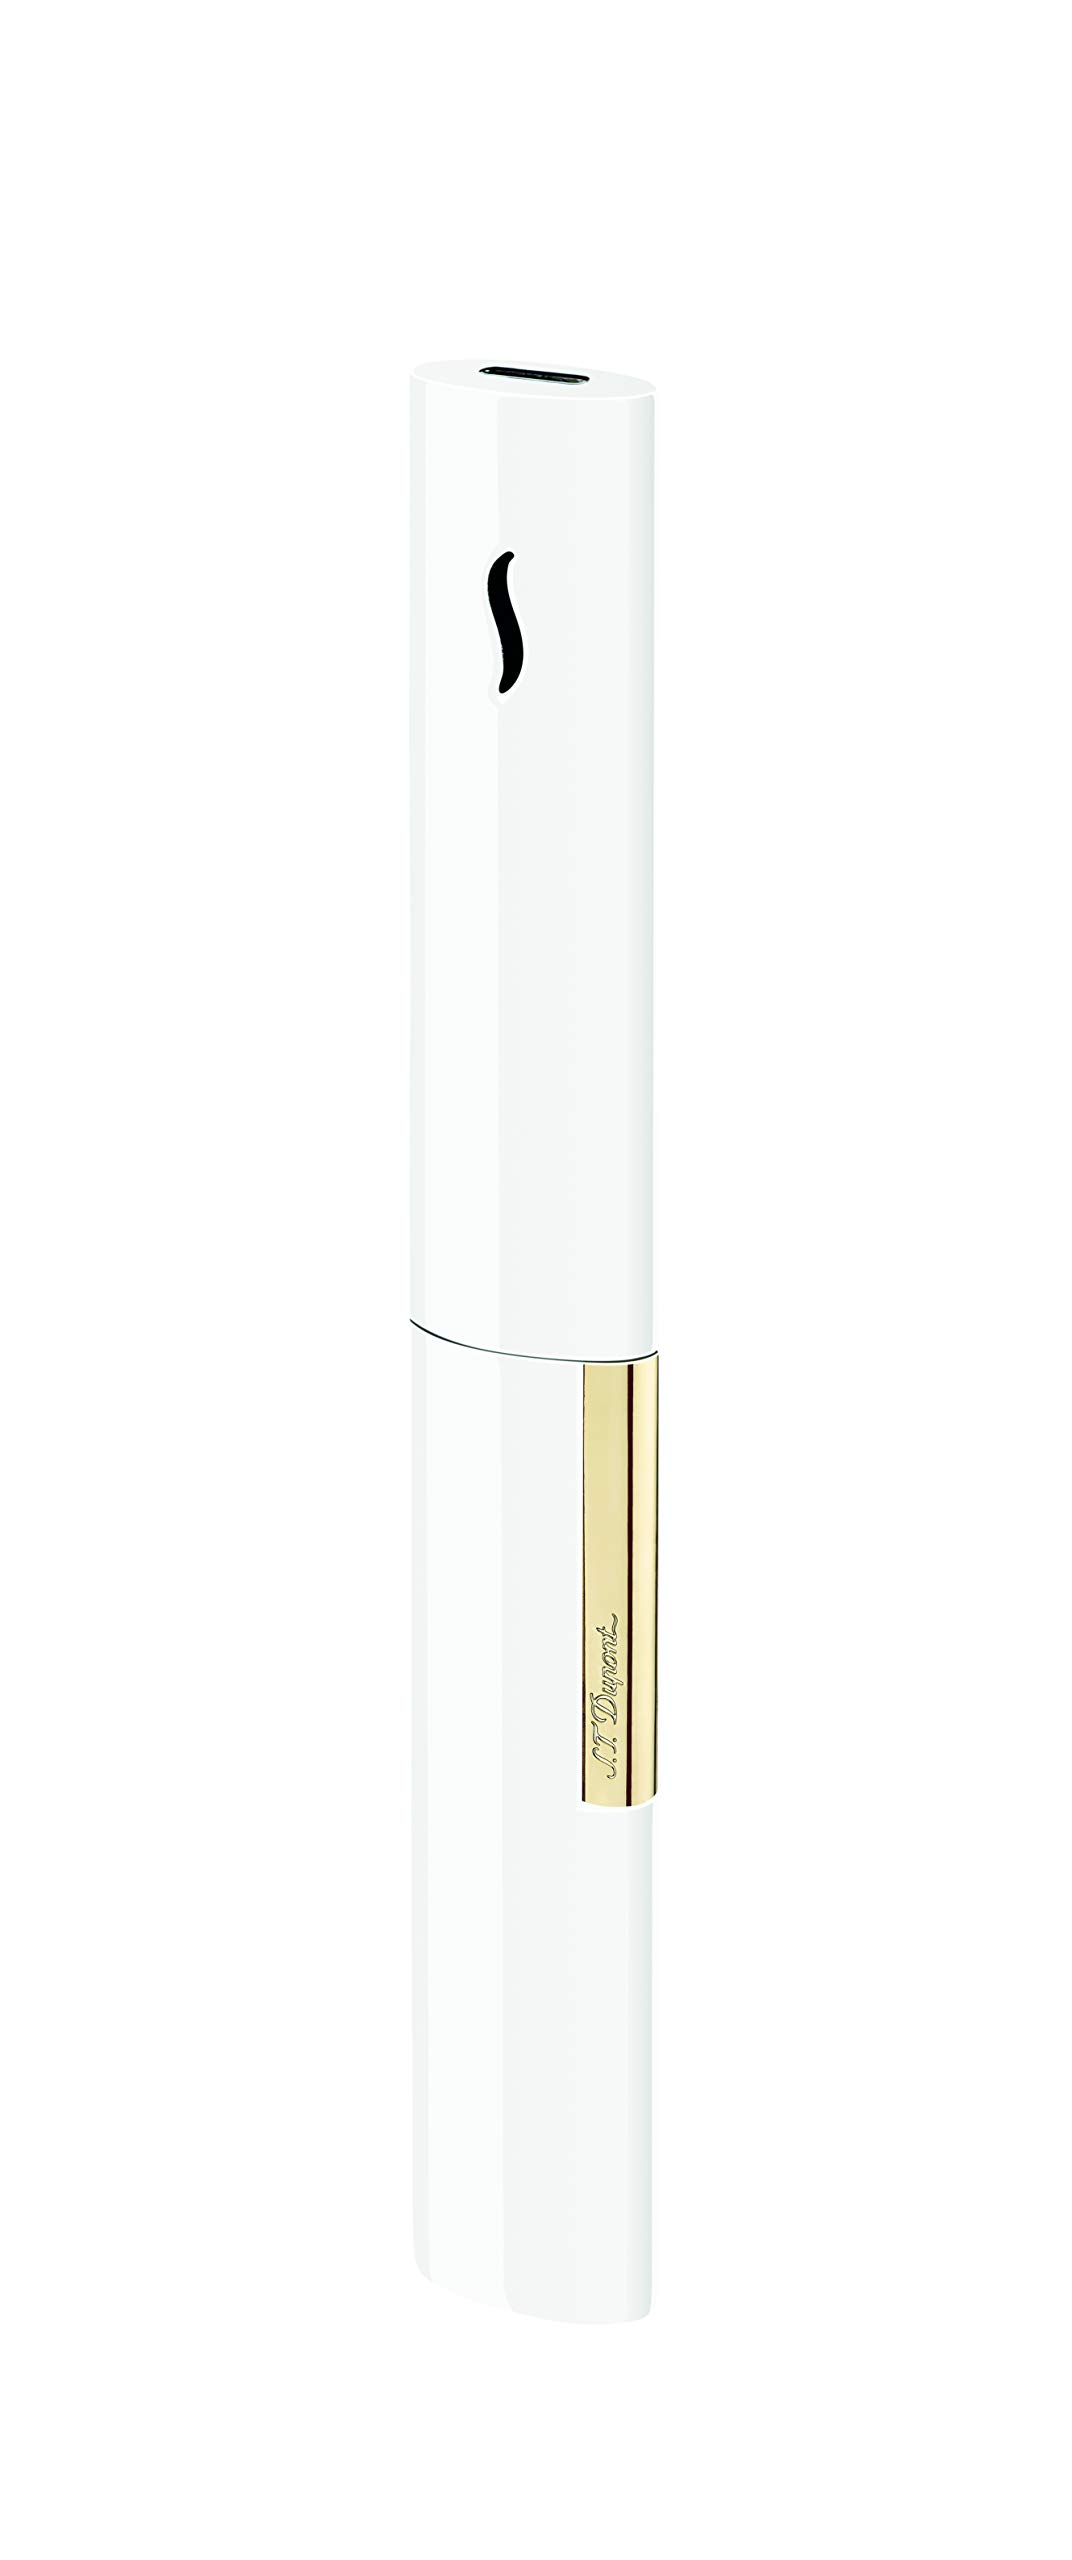 S.T. Dupont White/Gold Luxury Lighter The Wand by S.T. Dupont (Image #1)